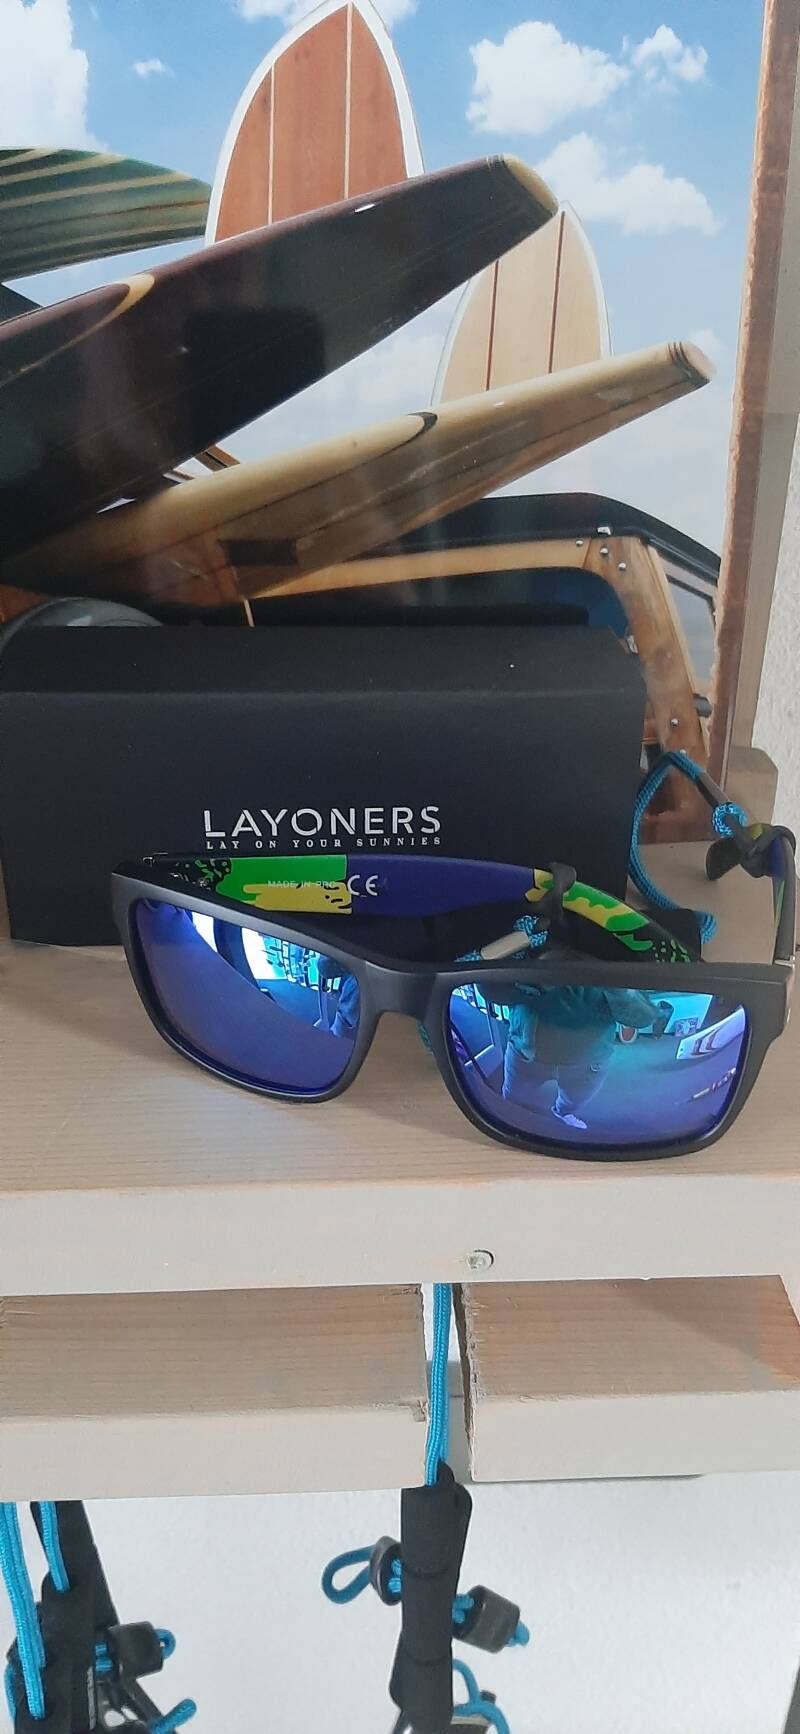 Sunglasses with floating cord